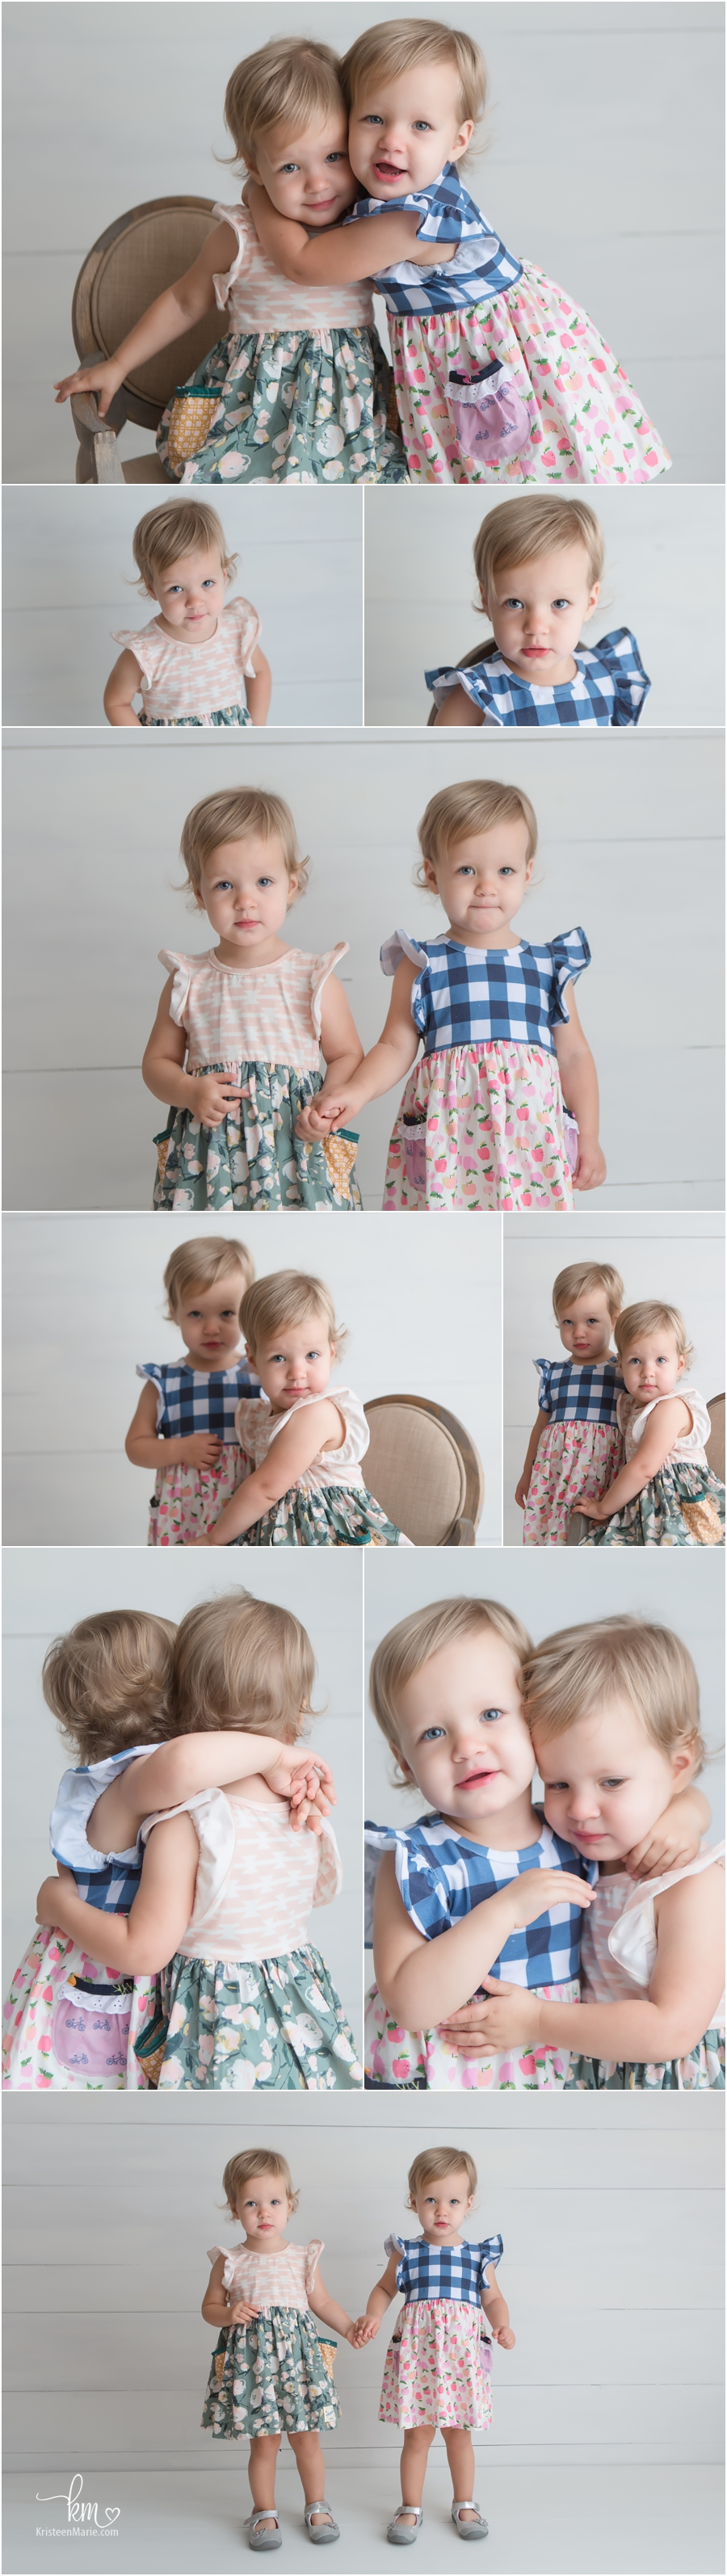 twin girls at 2 years old - milestone session in studio